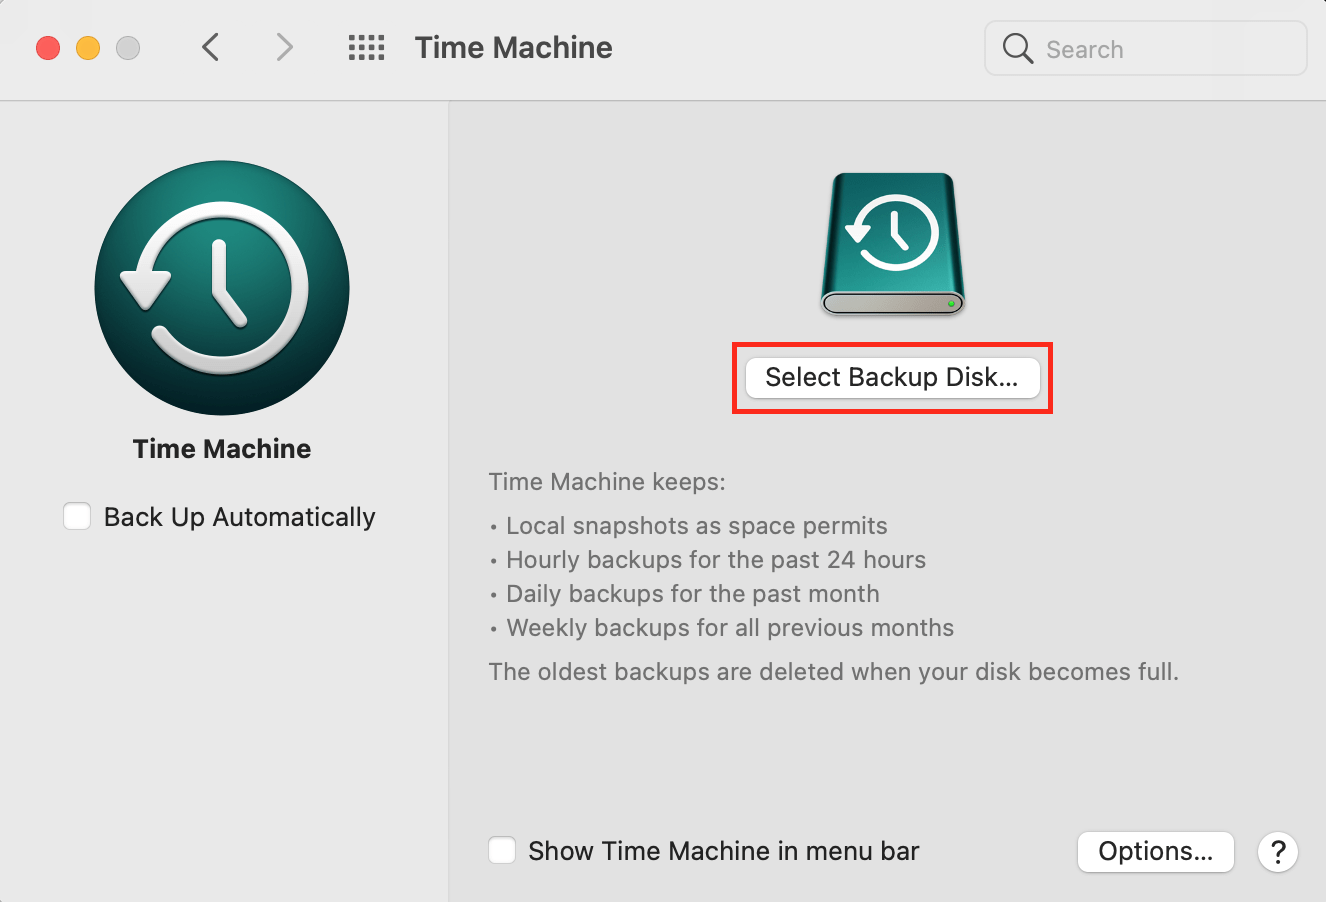 Select Backup Disk in time machine on Mac